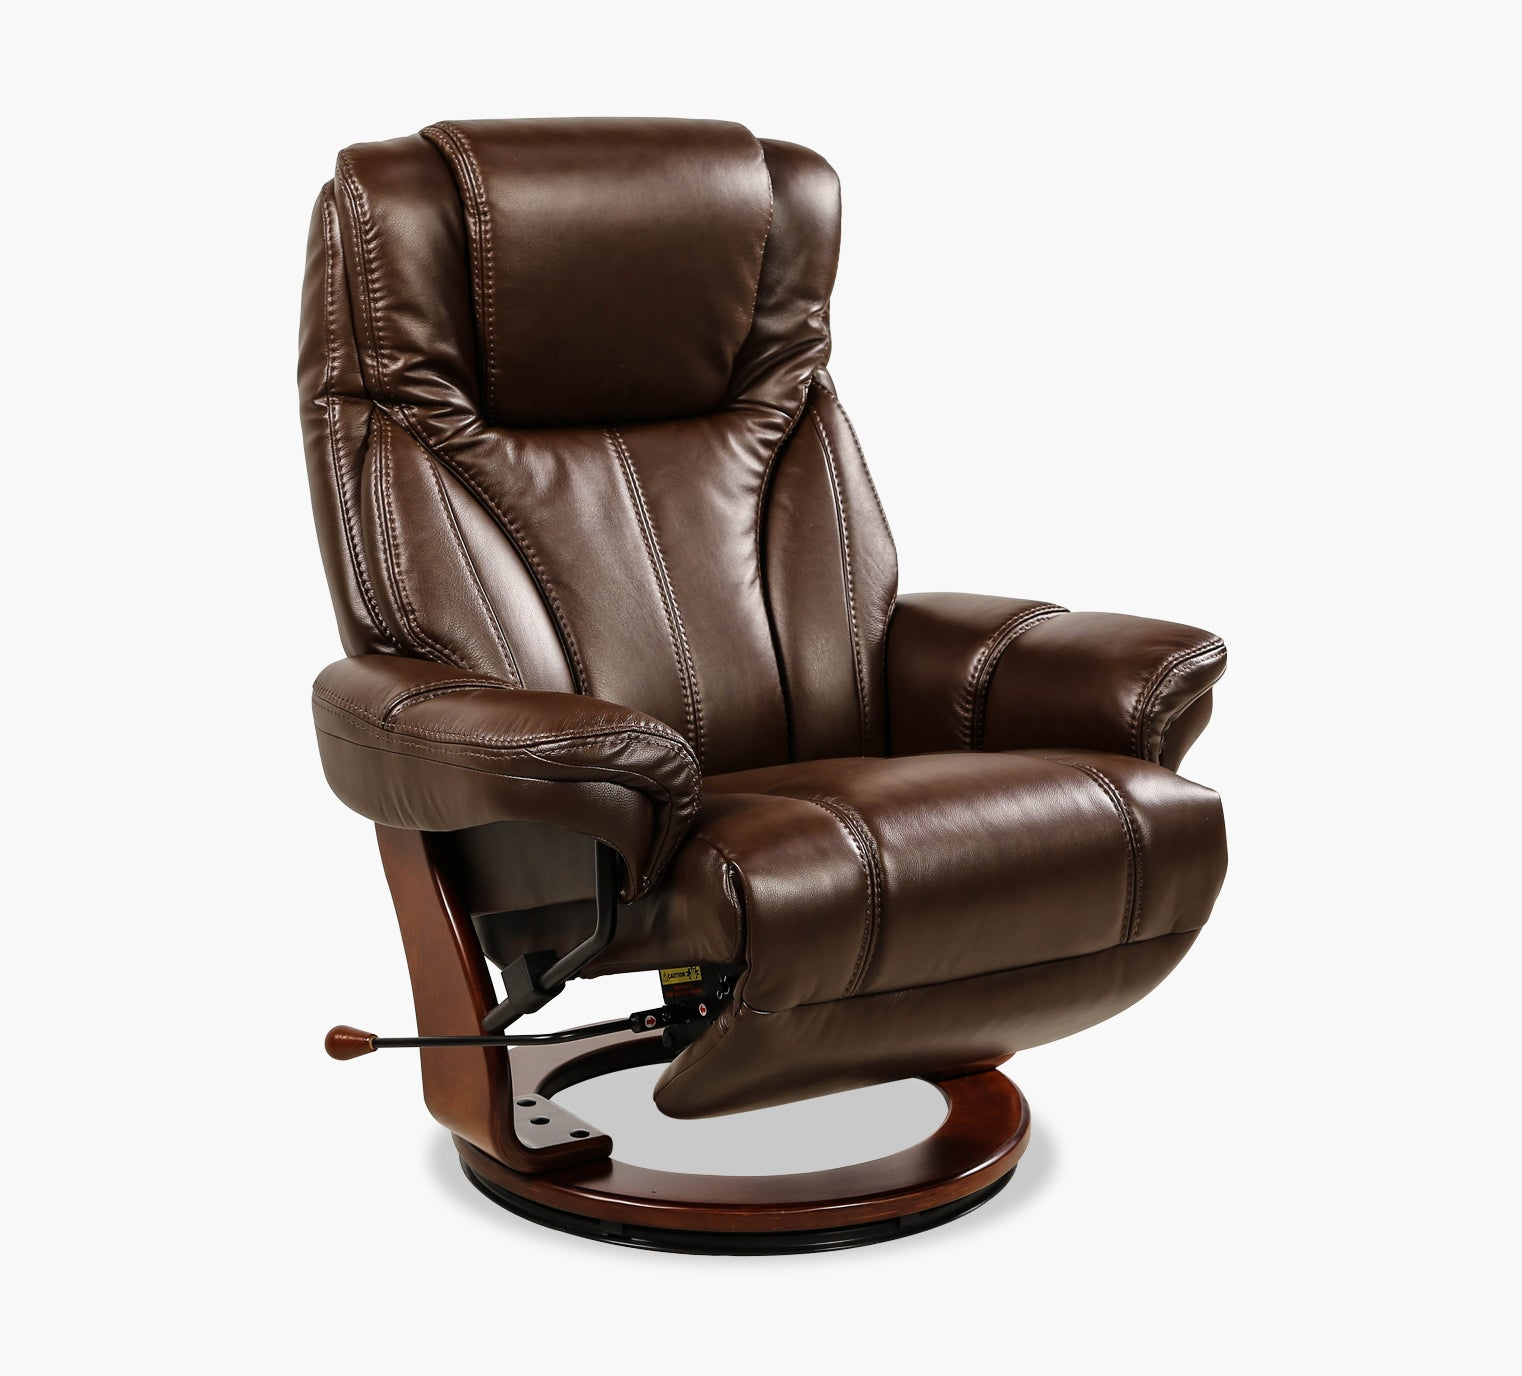 Magnificent Carter Leather Swivel Chair Recliner Unemploymentrelief Wooden Chair Designs For Living Room Unemploymentrelieforg